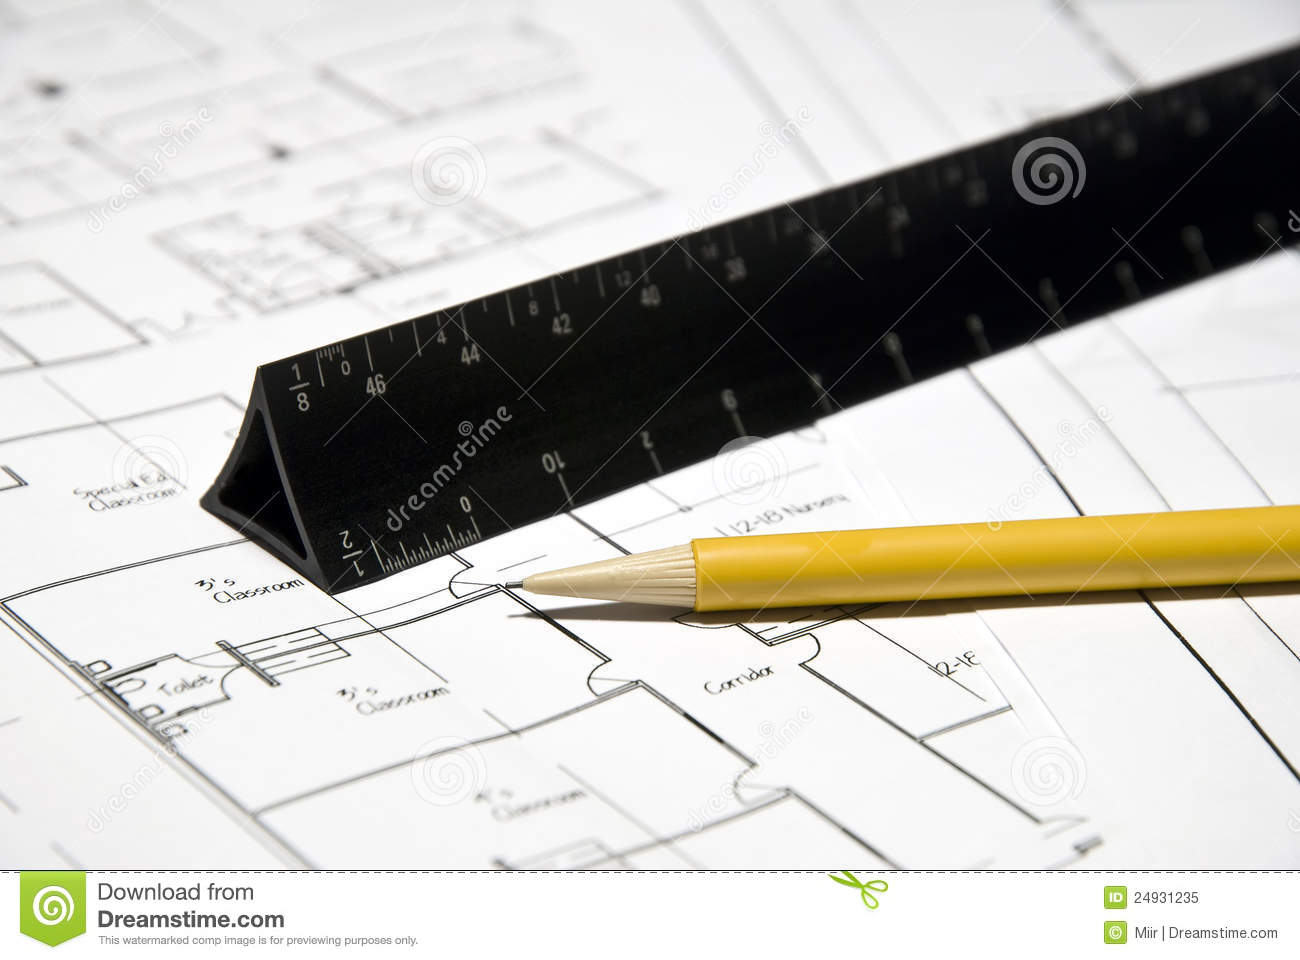 Architect tools and plans royalty free stock photo image for Architecture design tools free